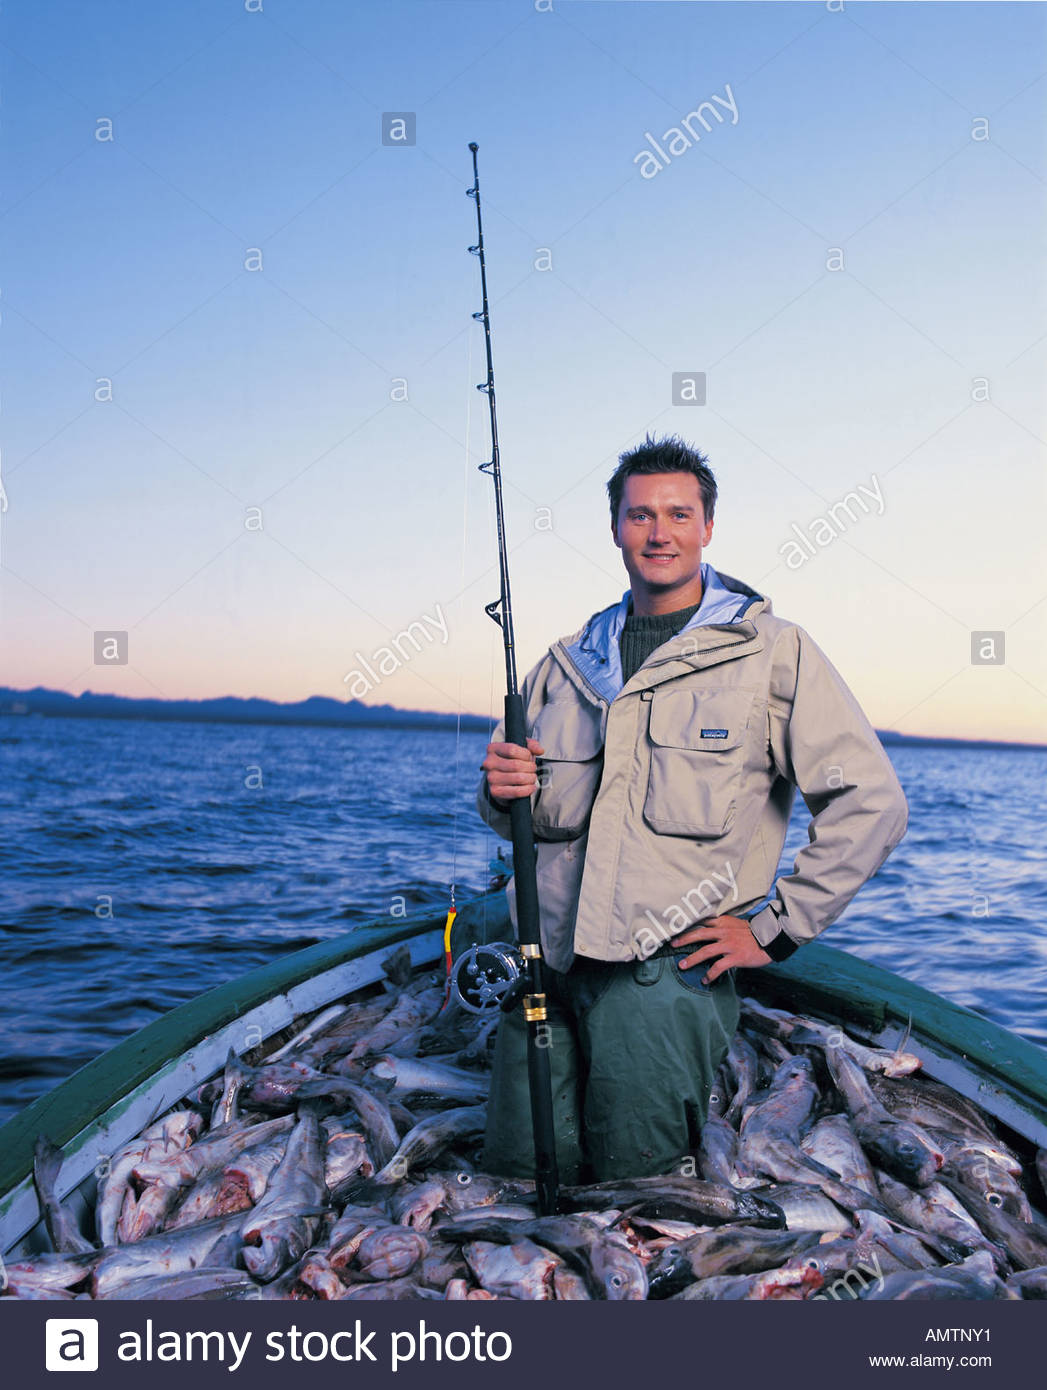 Image result for boat full of fish